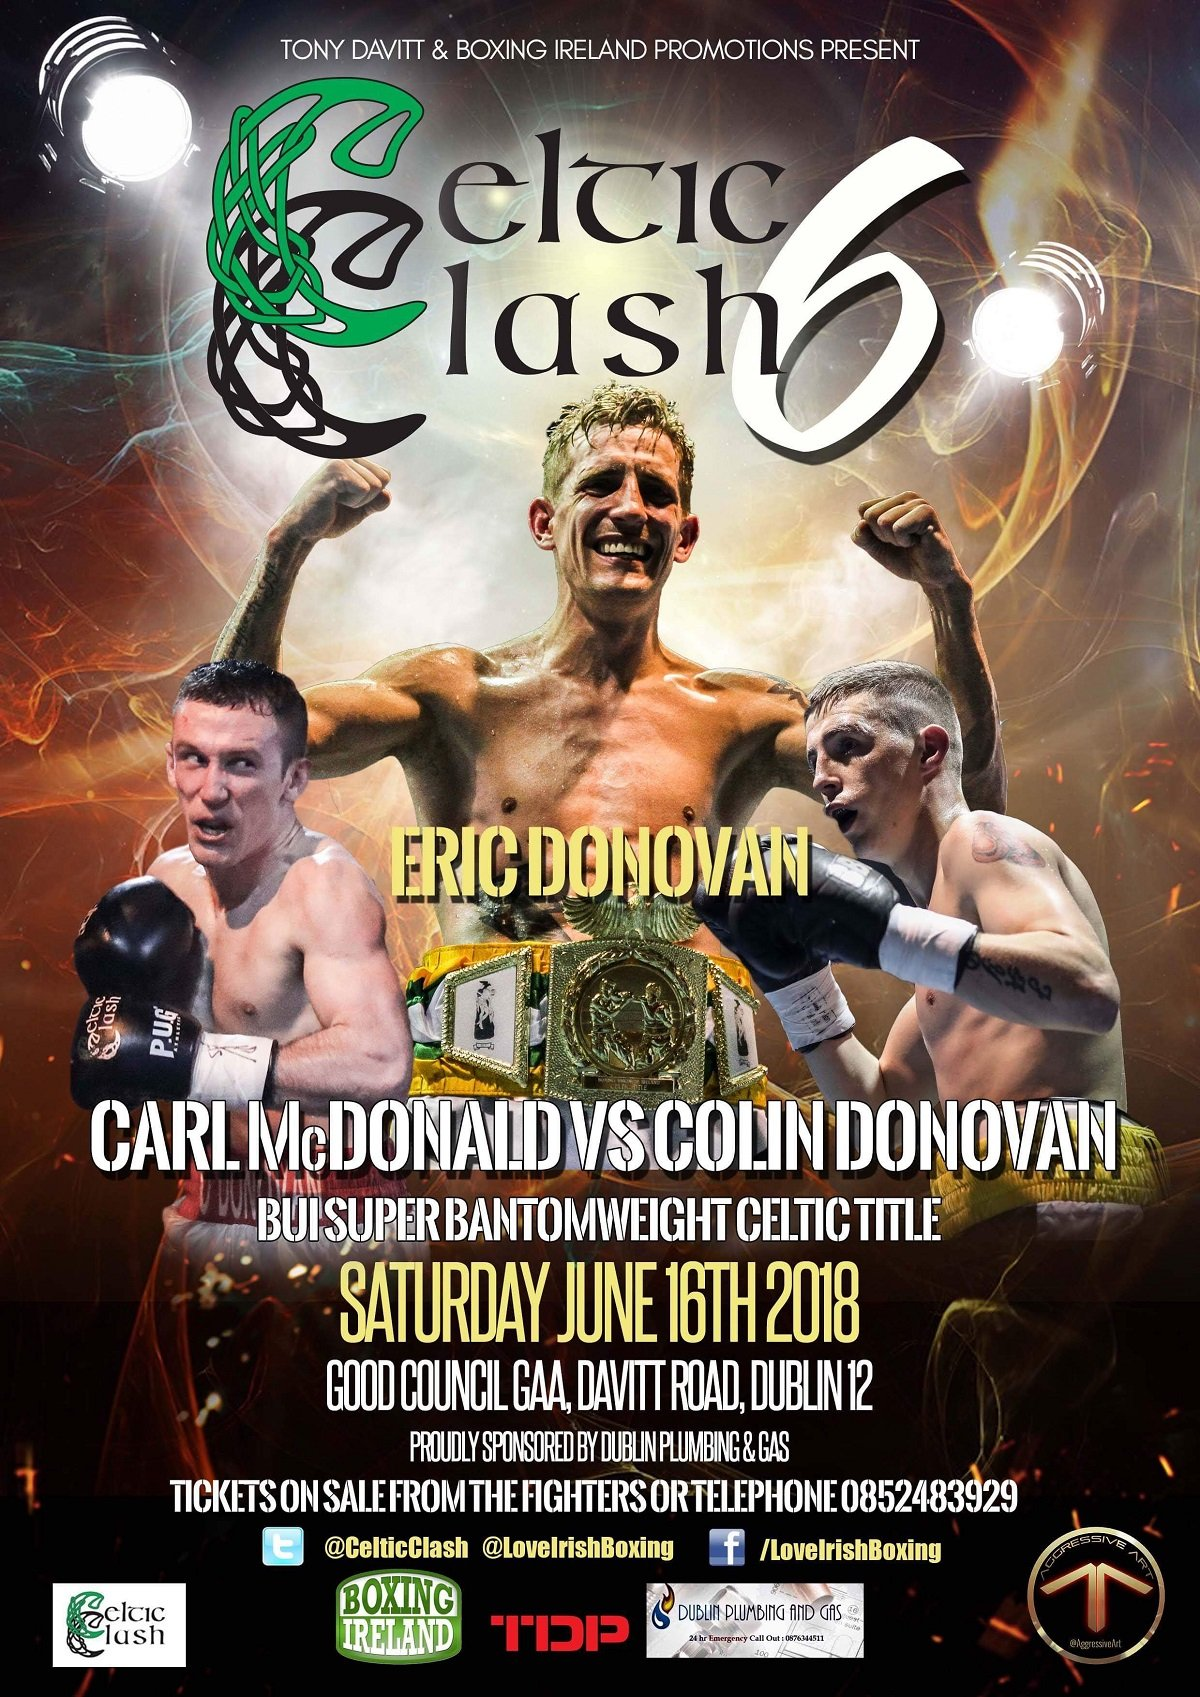 - The popular Celtic Clash series will return to Dublin next month for a sixth show in under 13 months. The Boxing Ireland Promotions and Tony Davitt Promotions venture will take over the Good Counsel GAA Club once again on Saturday June 16th for 'Celtic Clash 6'.